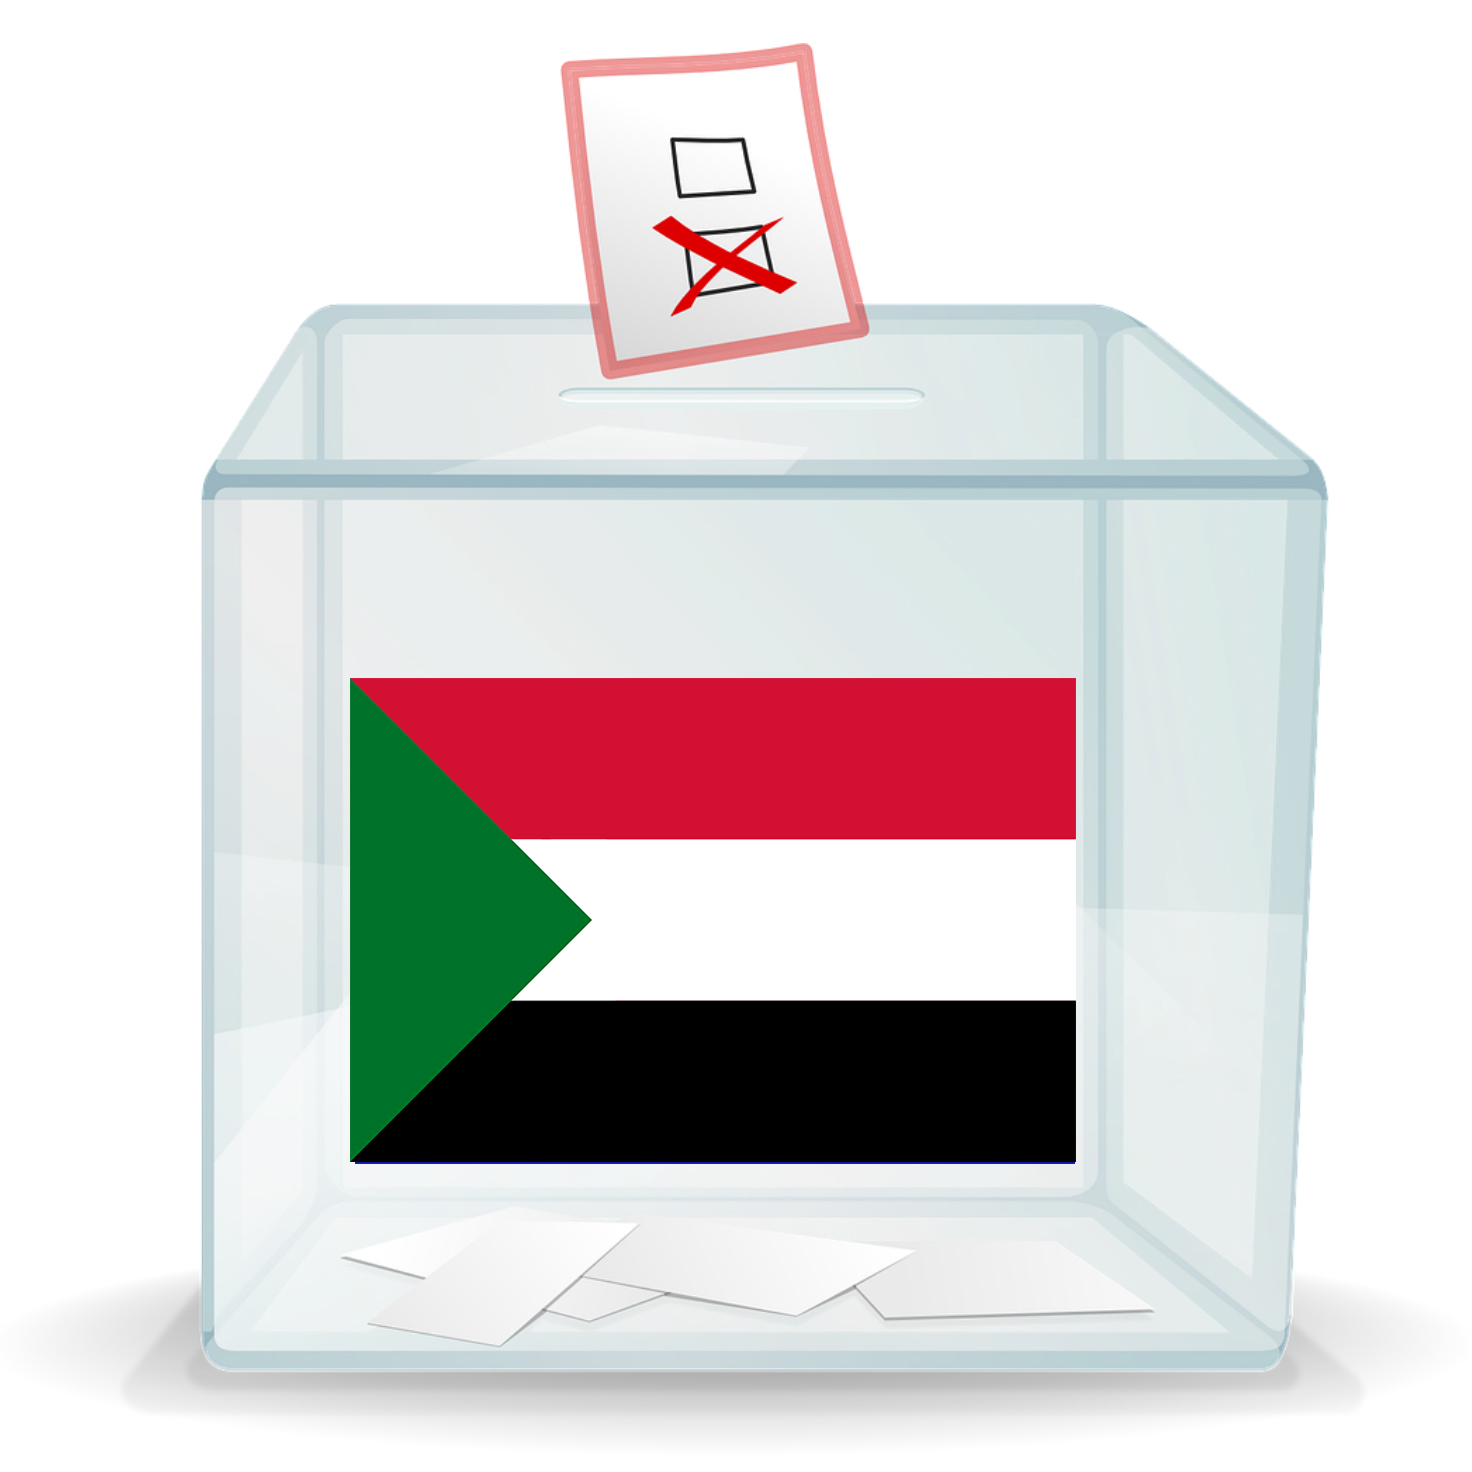 Ballot box with image of Sudanese flag on it